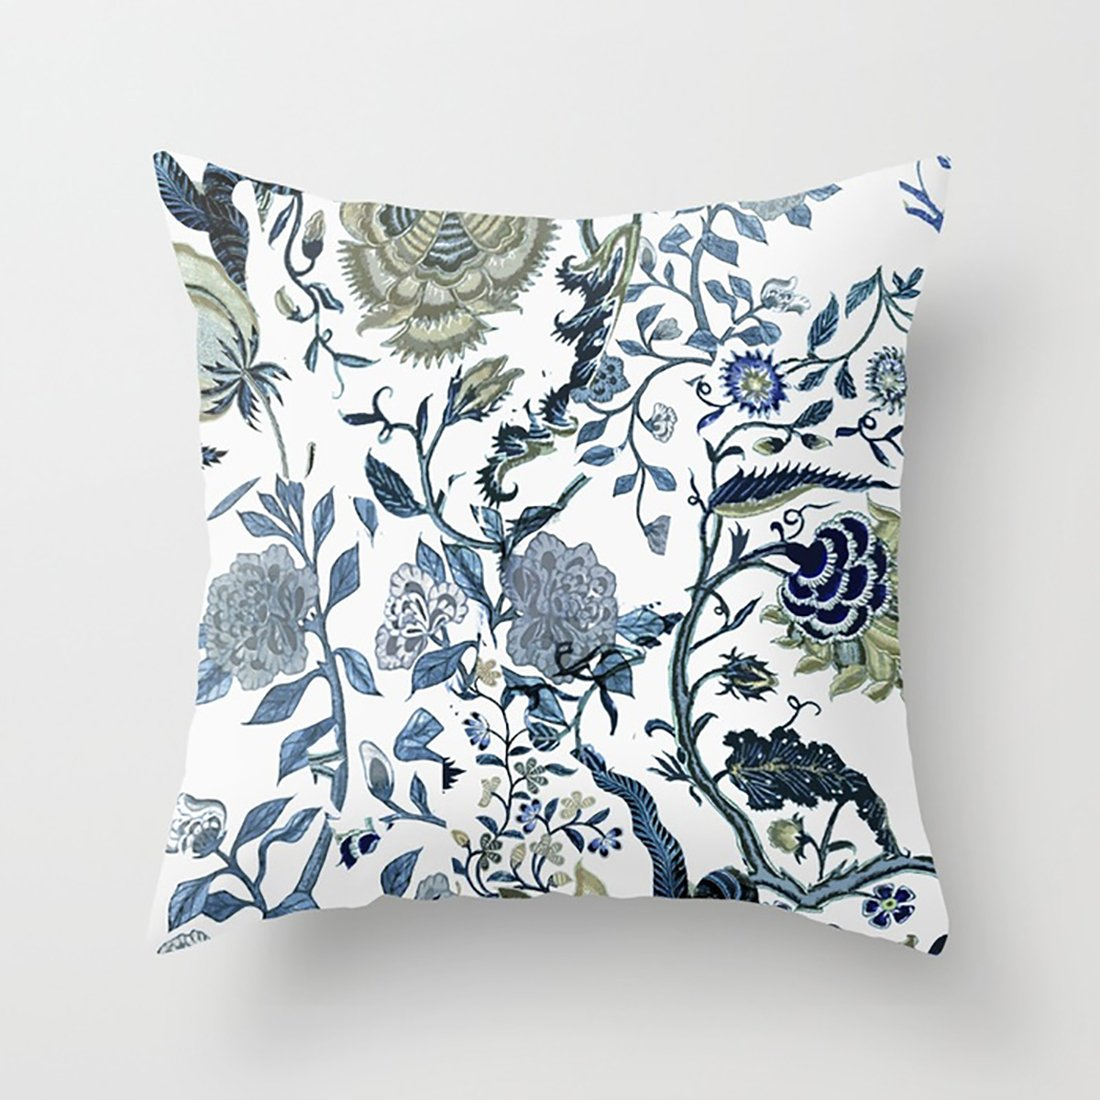 Actor Land Throw Pillow Case Blue Vintage Chinoiserie Flora Hold Pillow Cover With Size 18 In18 In For Household & Car by Actor Land